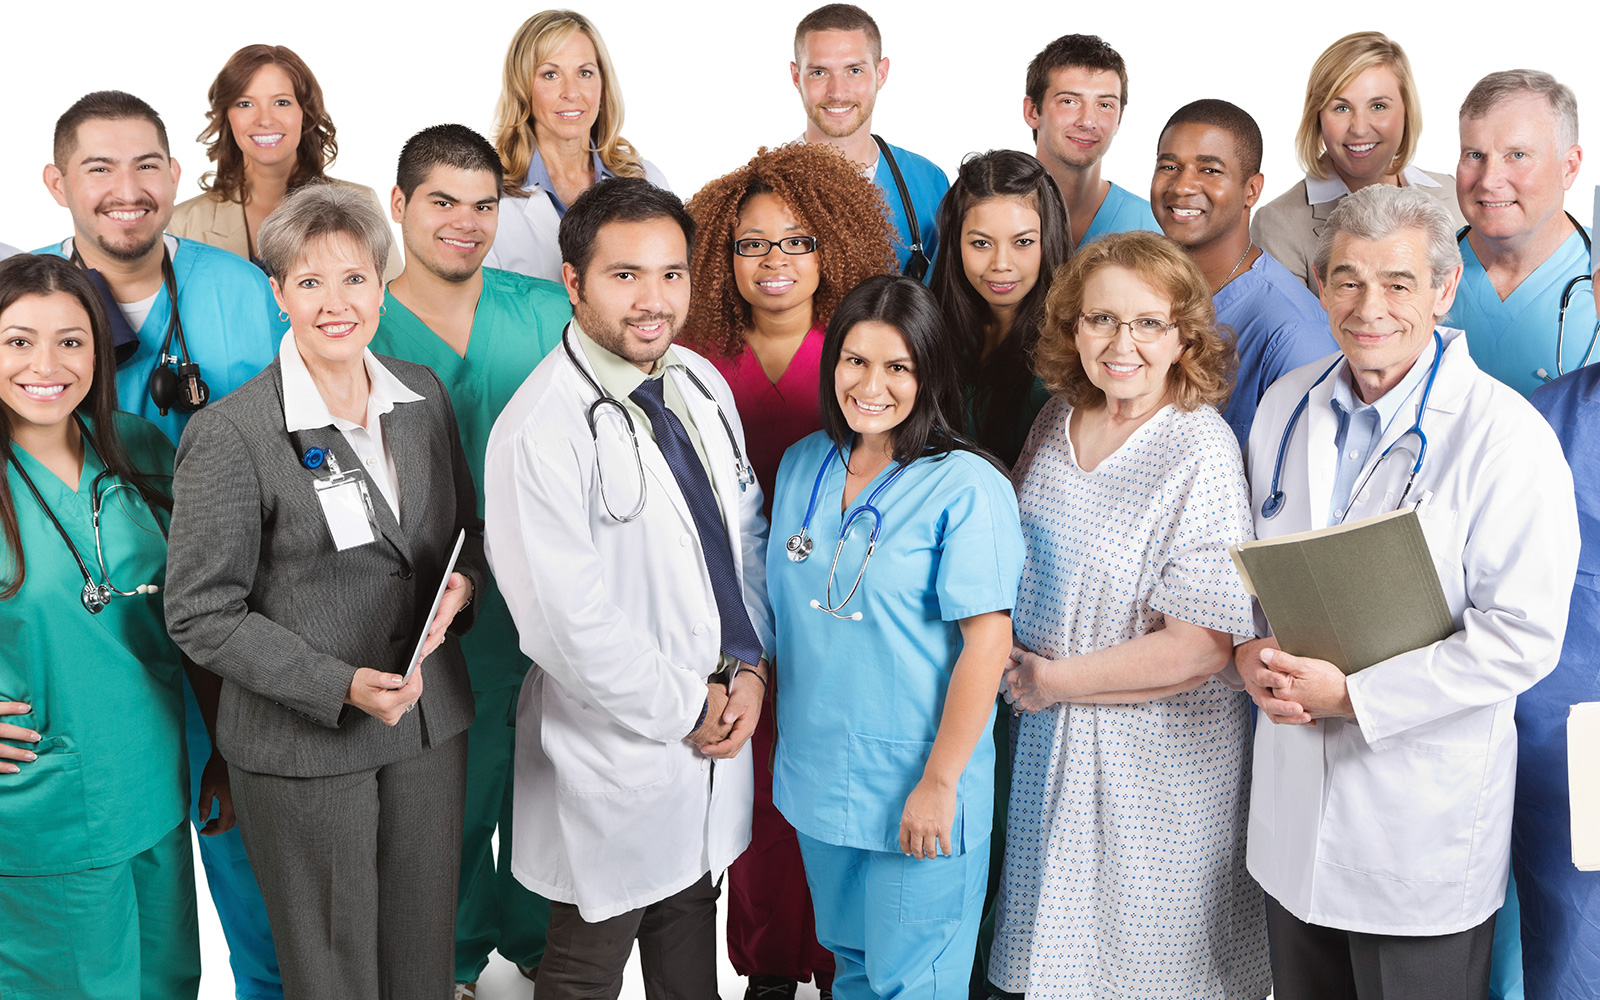 Over a dozen diverse smiling hospital staff and a patient standing together, all looking at the camera.